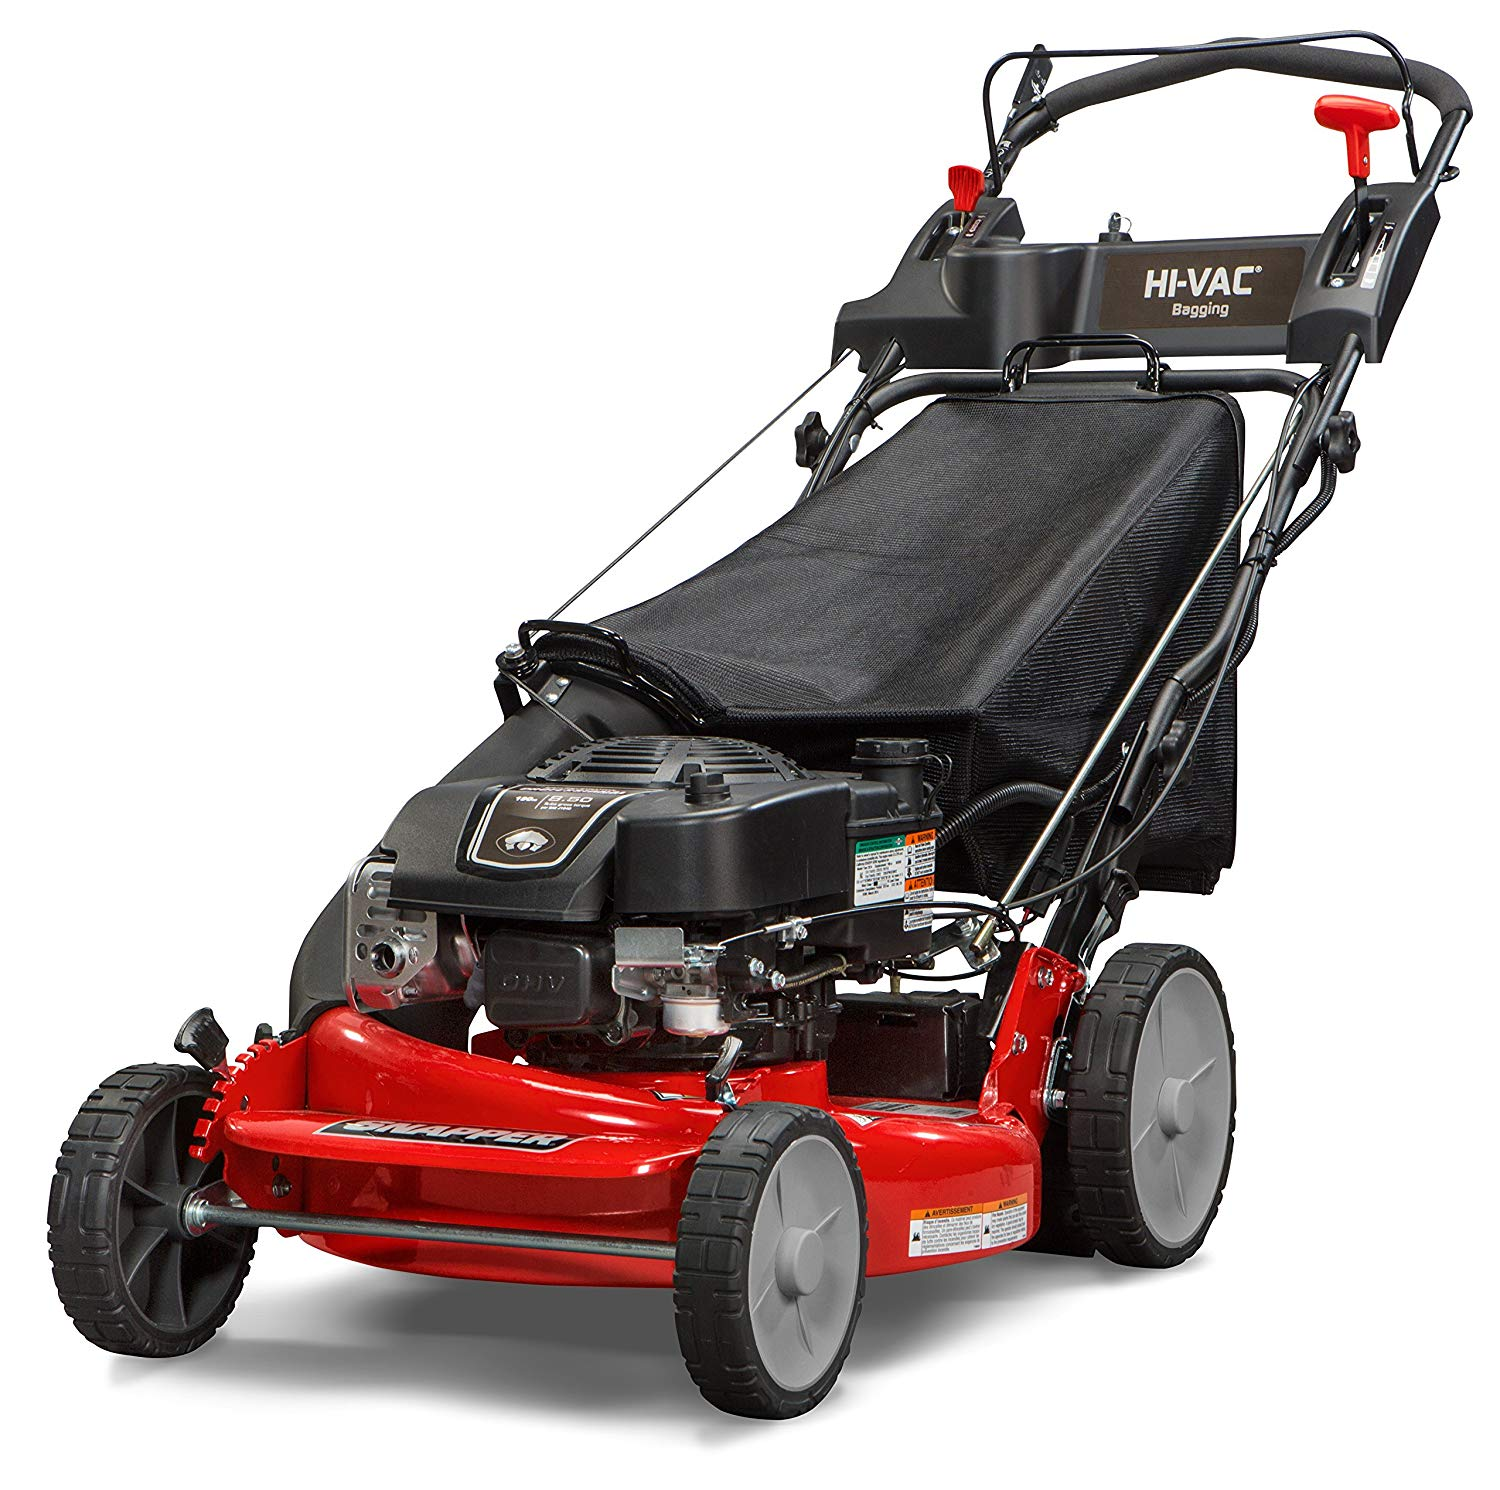 Snapper P2185020E / 7800982 Self Propelled Lawn Mower Review